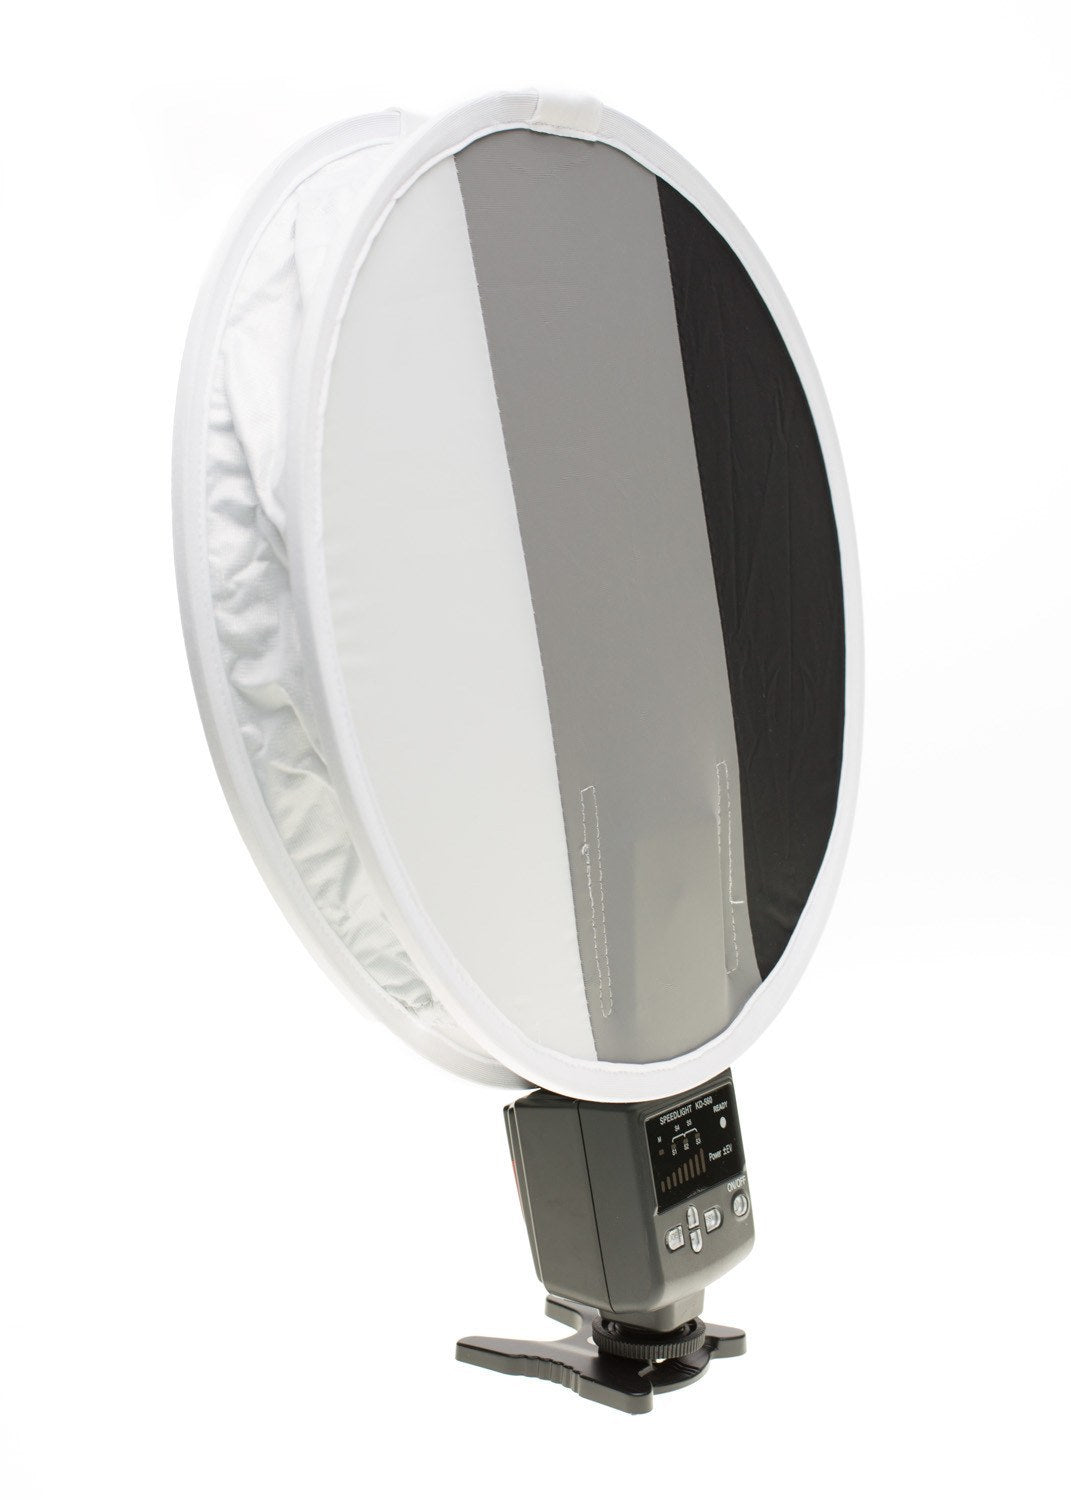 StudioPRO Pop Out Flash Disc Portable Speedlight Softbox -  - 3